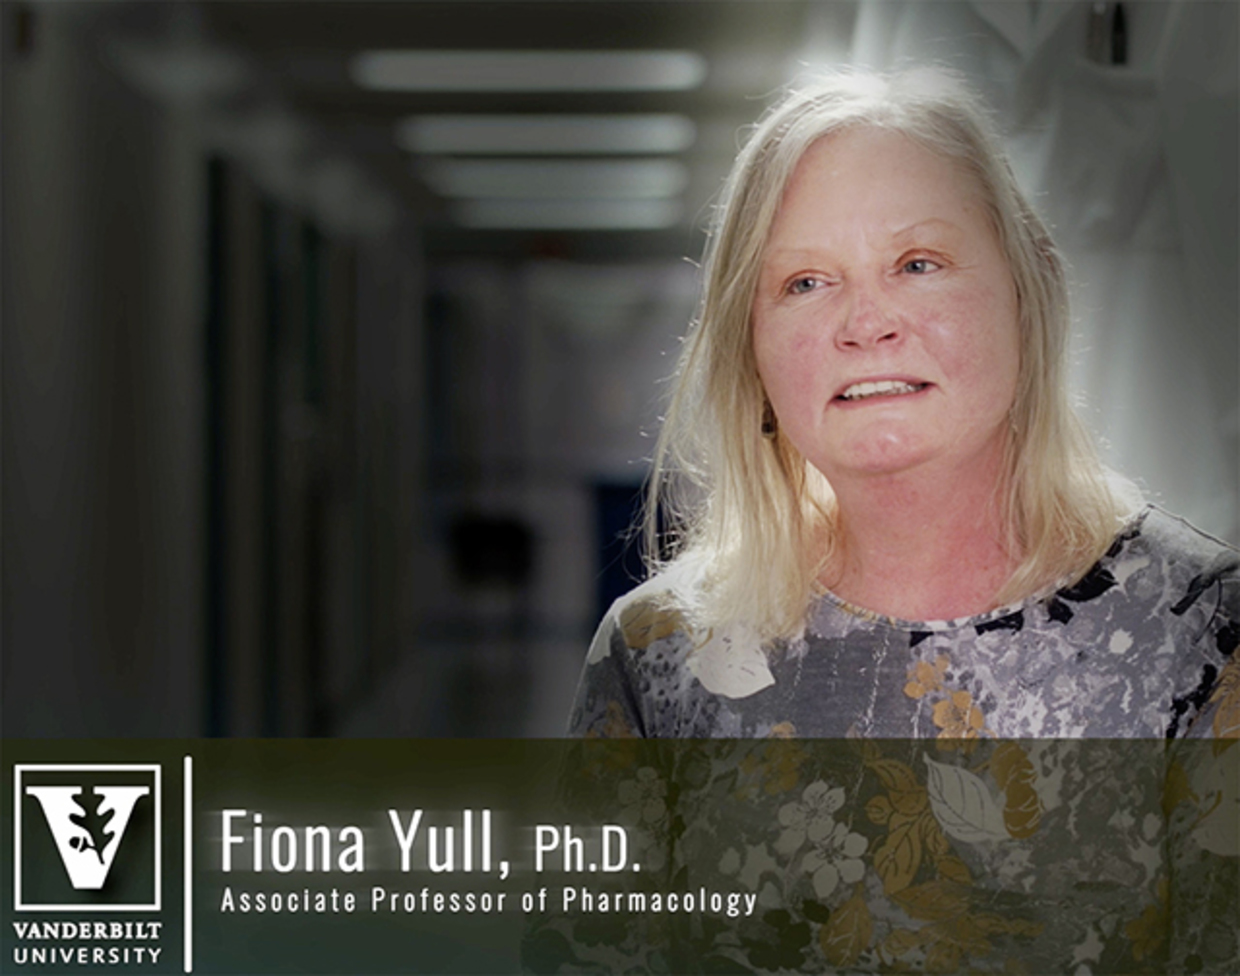 Screenshot of the interview with faculty member Fiona Yull, Ph.D., Associate Professor of Pharmacology. A banner with Yull's name, appointment, and the Vanderbilt logo is overlaid over the bottom of the screen. Yull occupies the right side of the screen. There is nothing in the foreground on the left side.